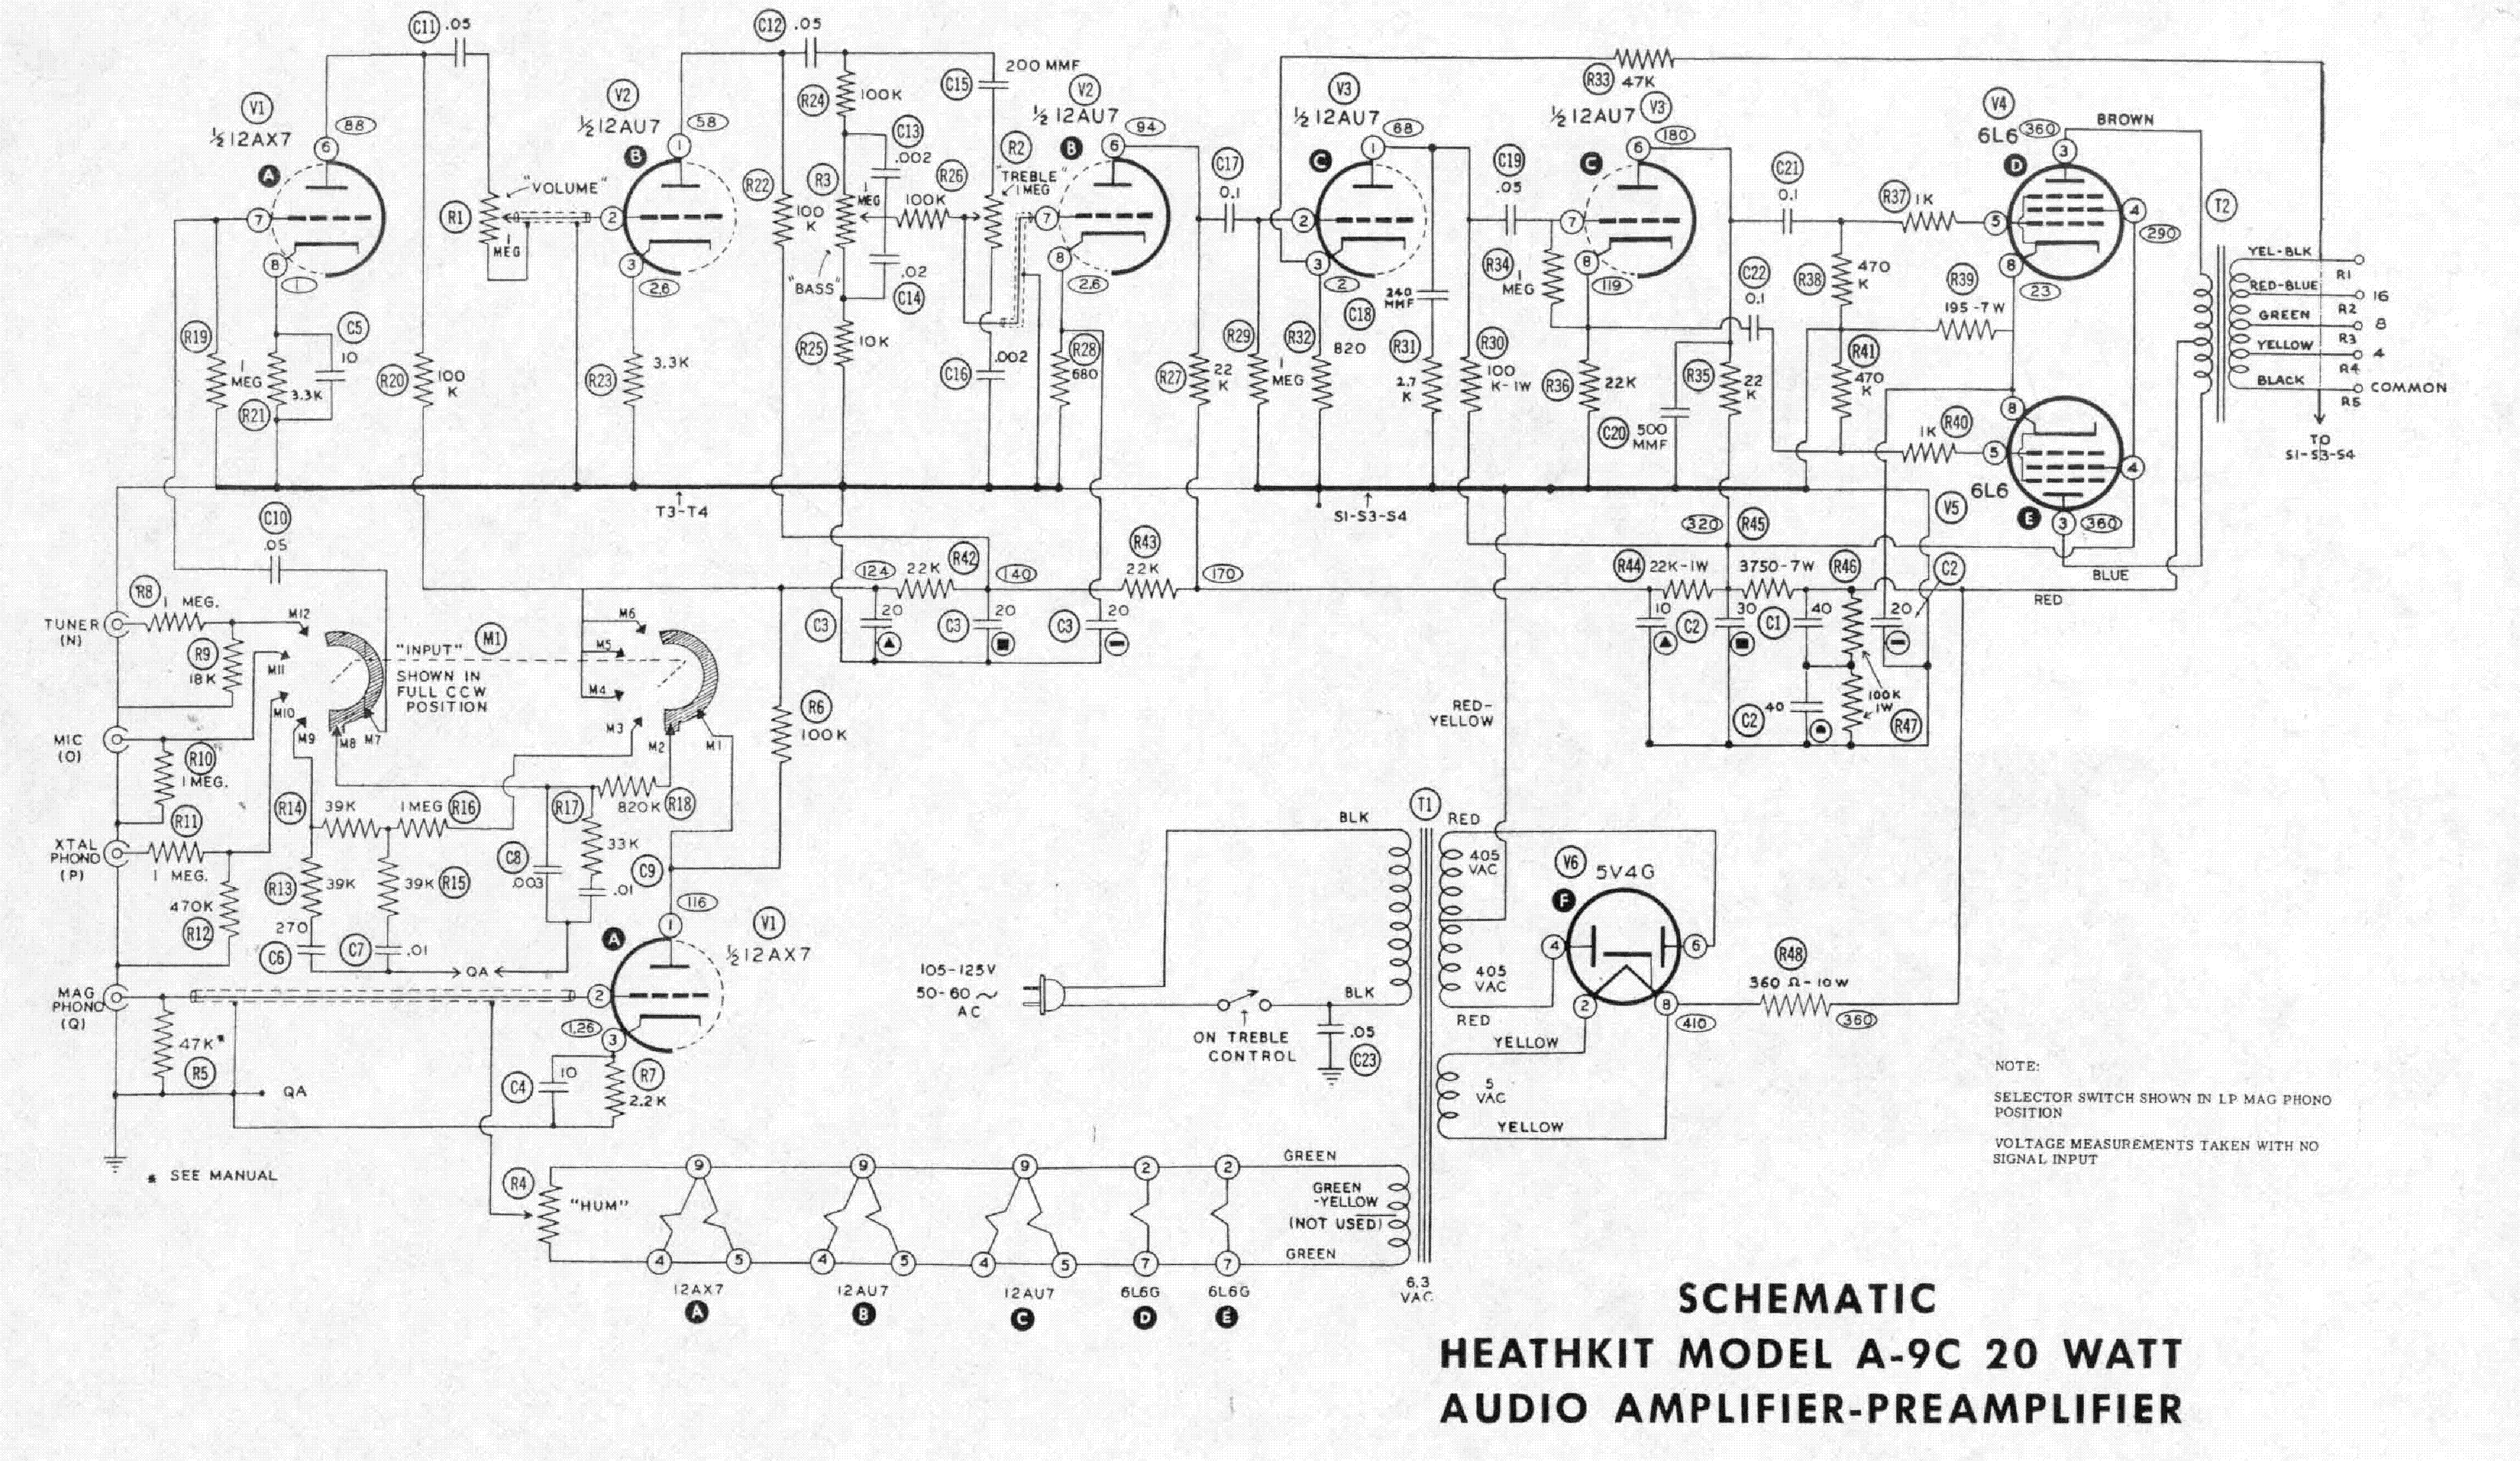 HEATHKIT XR-2 6 TRANSISTOR RADIO SCHEMATIC Service Manual ... on